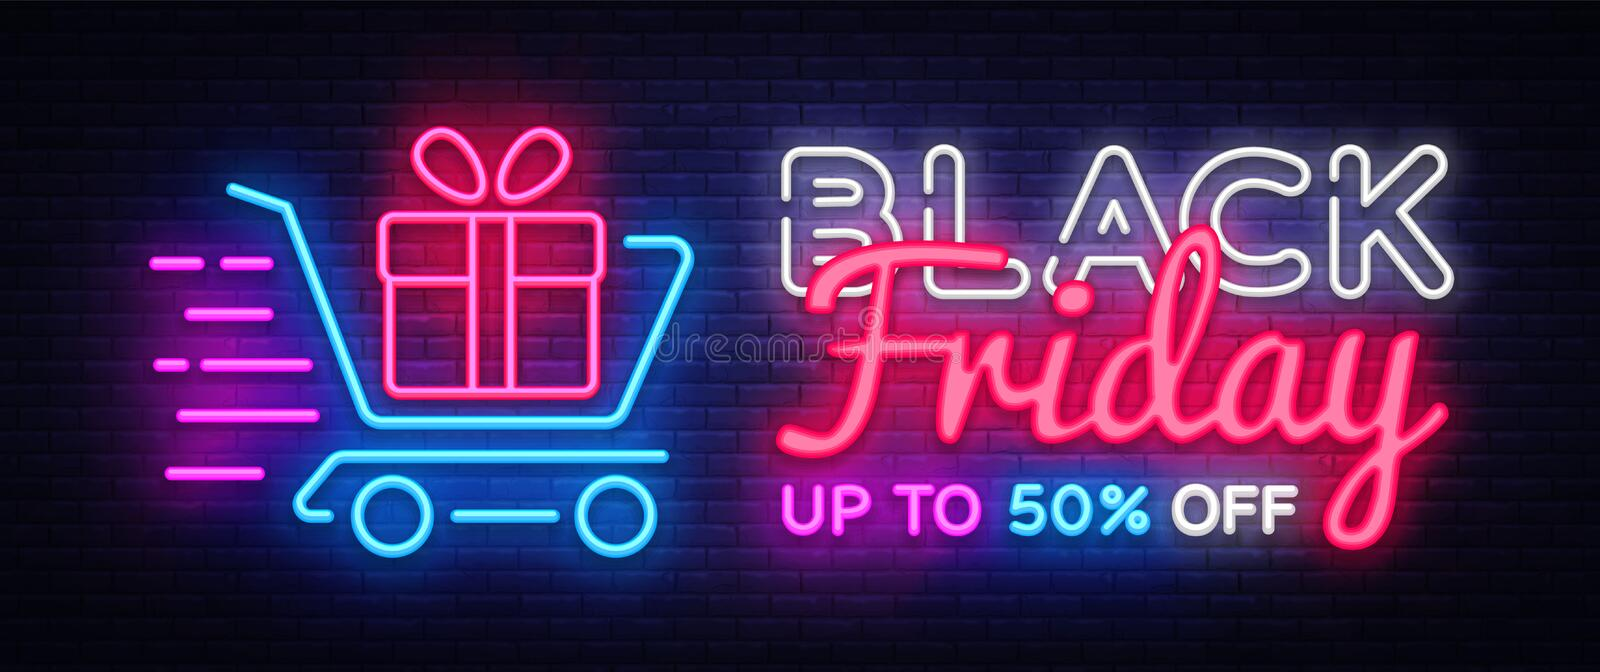 Molde de néon do projeto do vetor do texto da venda de Black Friday Logotipo de néon da venda de Black Friday, elemento claro do  imagens de stock royalty free